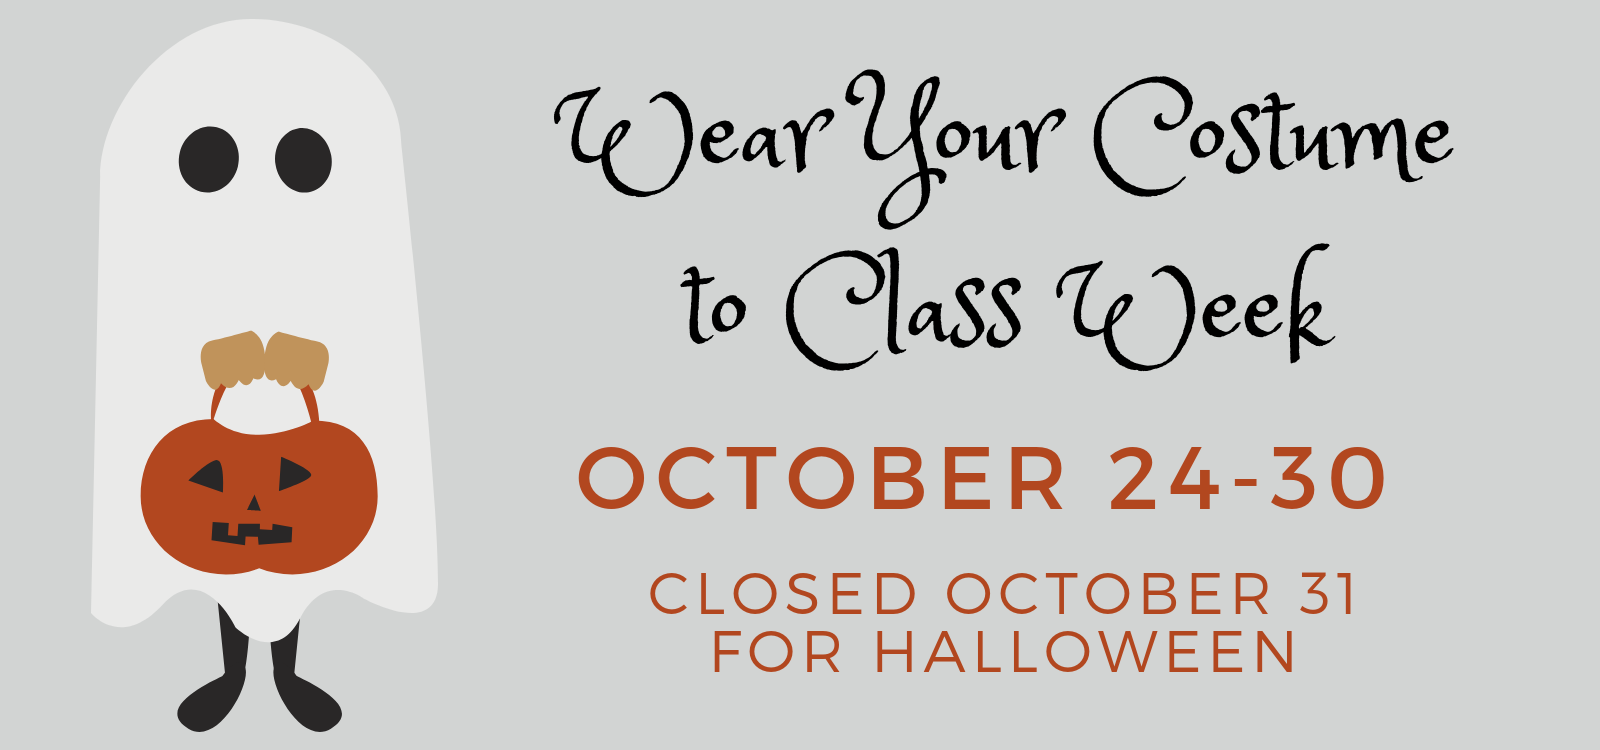 Wear Your Costume to Class Week(1)